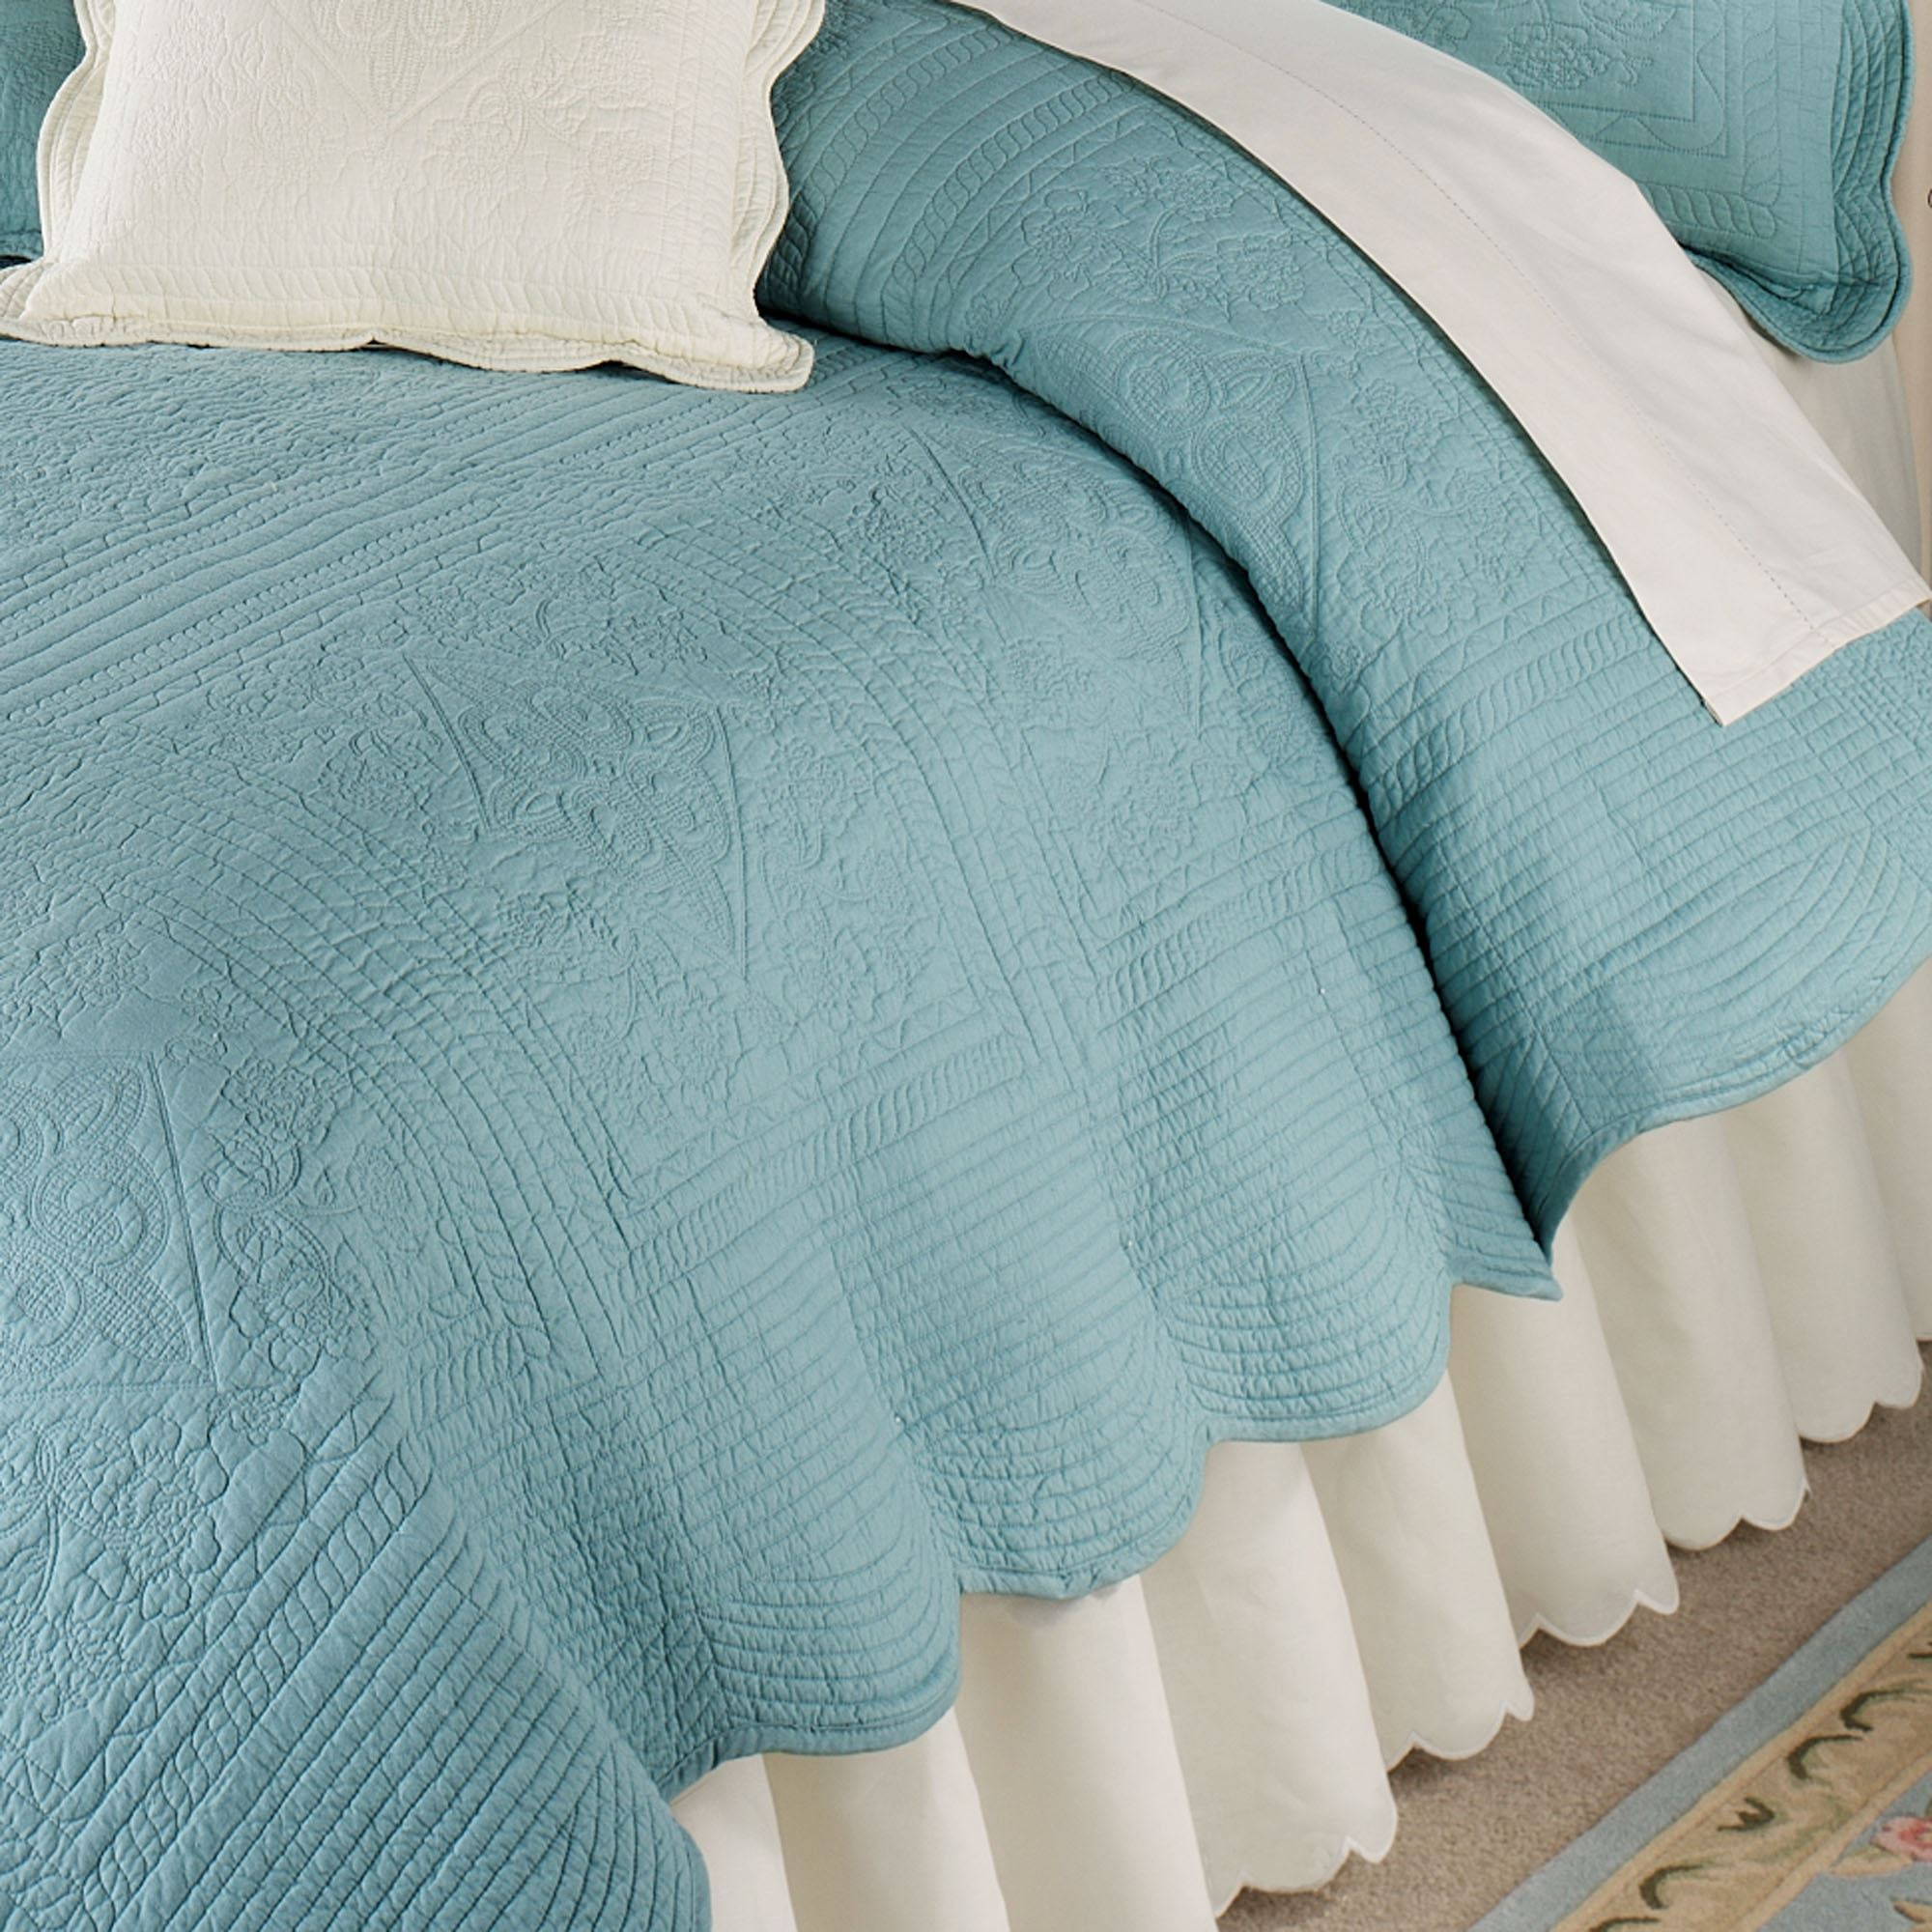 Venice Squares Solid Color Quilt Bedding : solid color quilts for bedding - Adamdwight.com